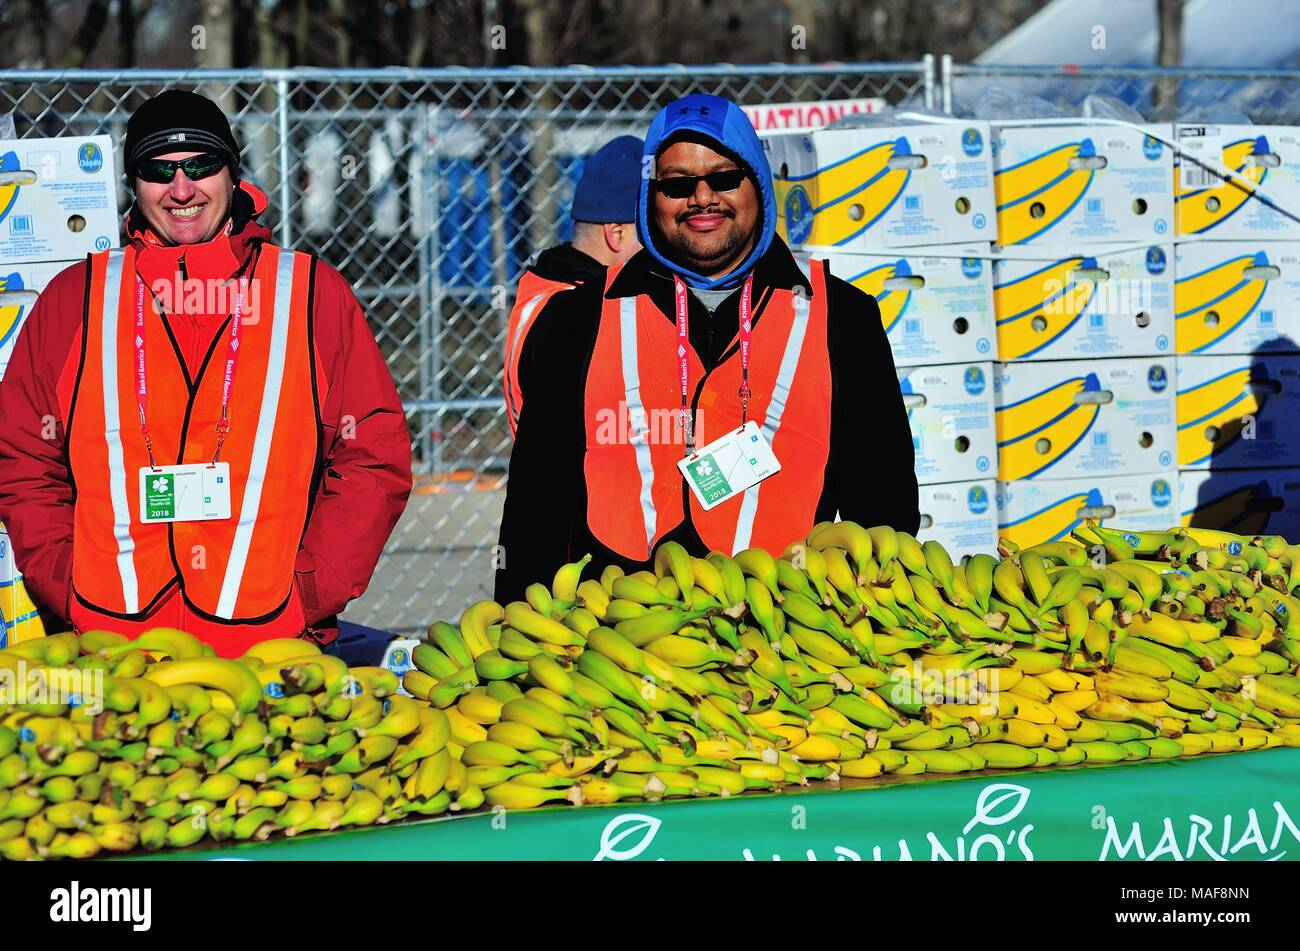 Chicago, Illinois, USA. Volunteers dressed for cold temperature staff a banana supply for runners that finish the Shamrock Shuffle 8K race. - Stock Image